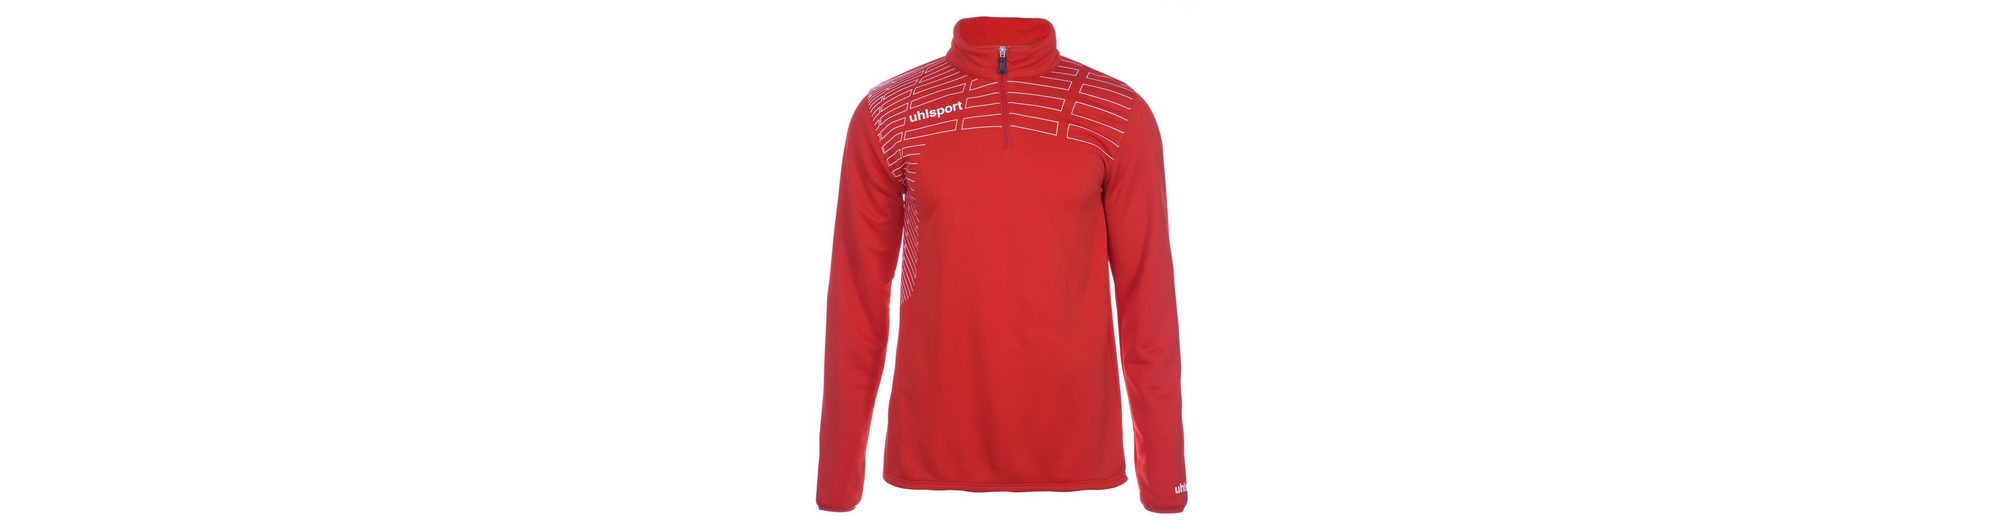 UHLSPORT Match 1/4 Zip Top Herren Online-Shopping-Freies Verschiffen iPDvs